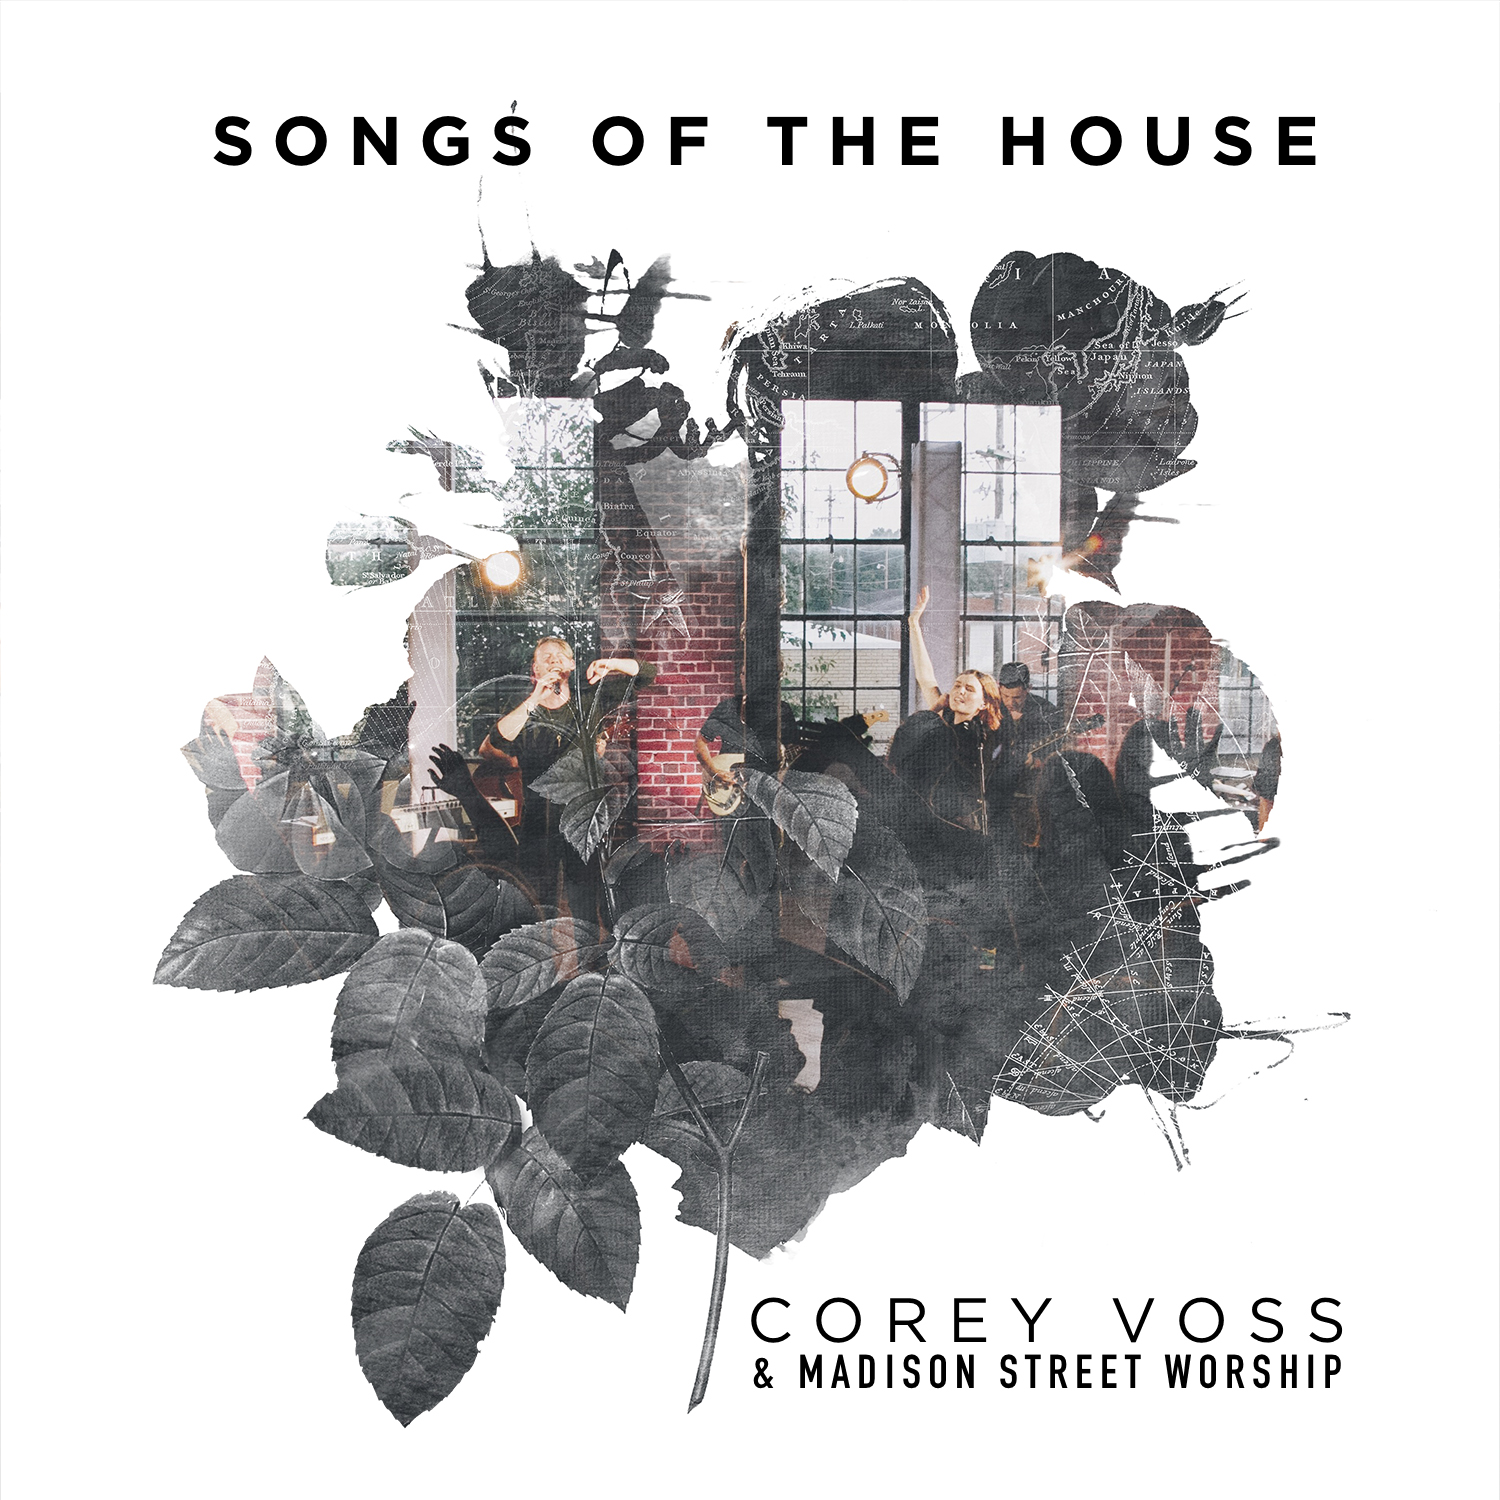 Corey Voss & Madison Street Worship - Songs of the House